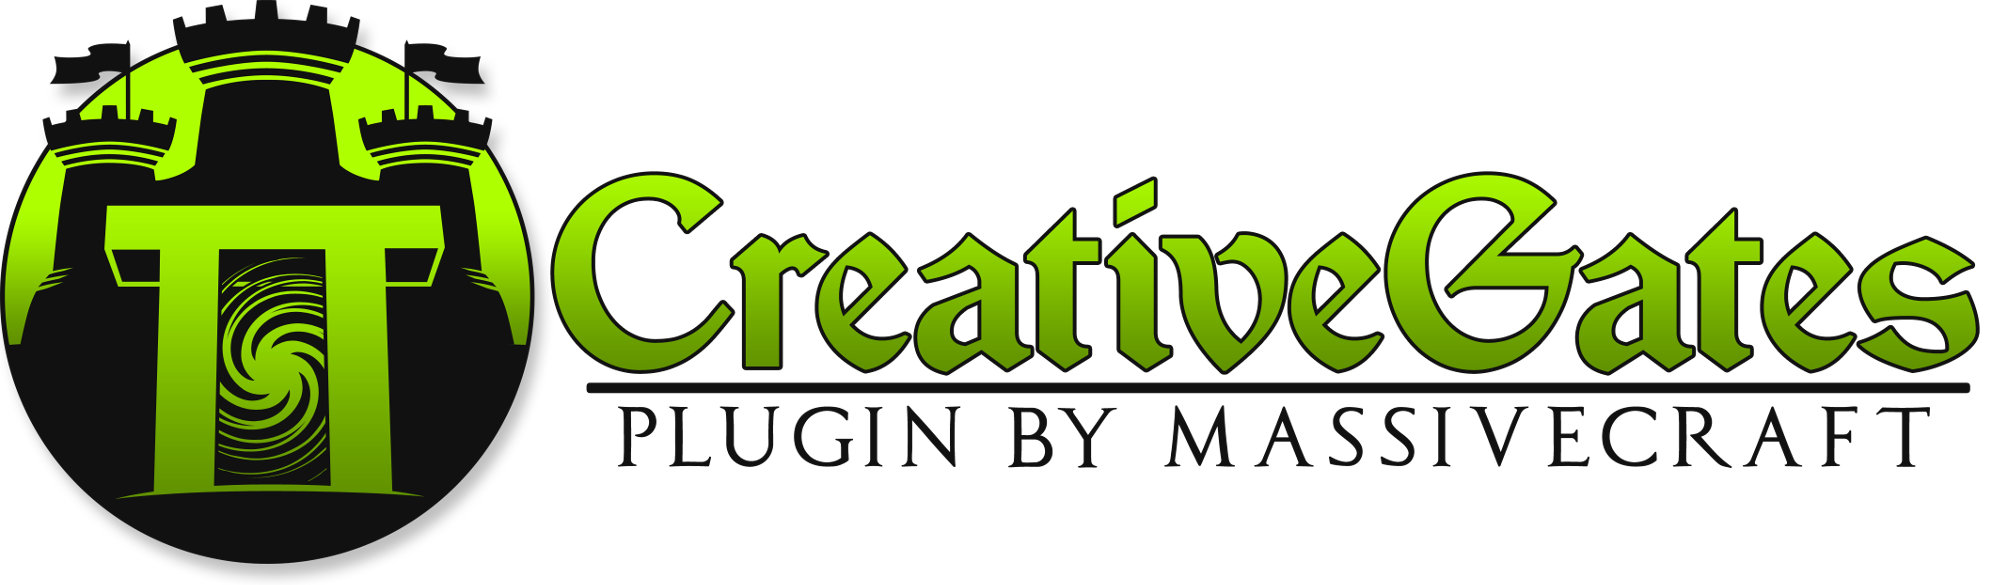 massivecraft-logotype-plugin-creativegates-2000